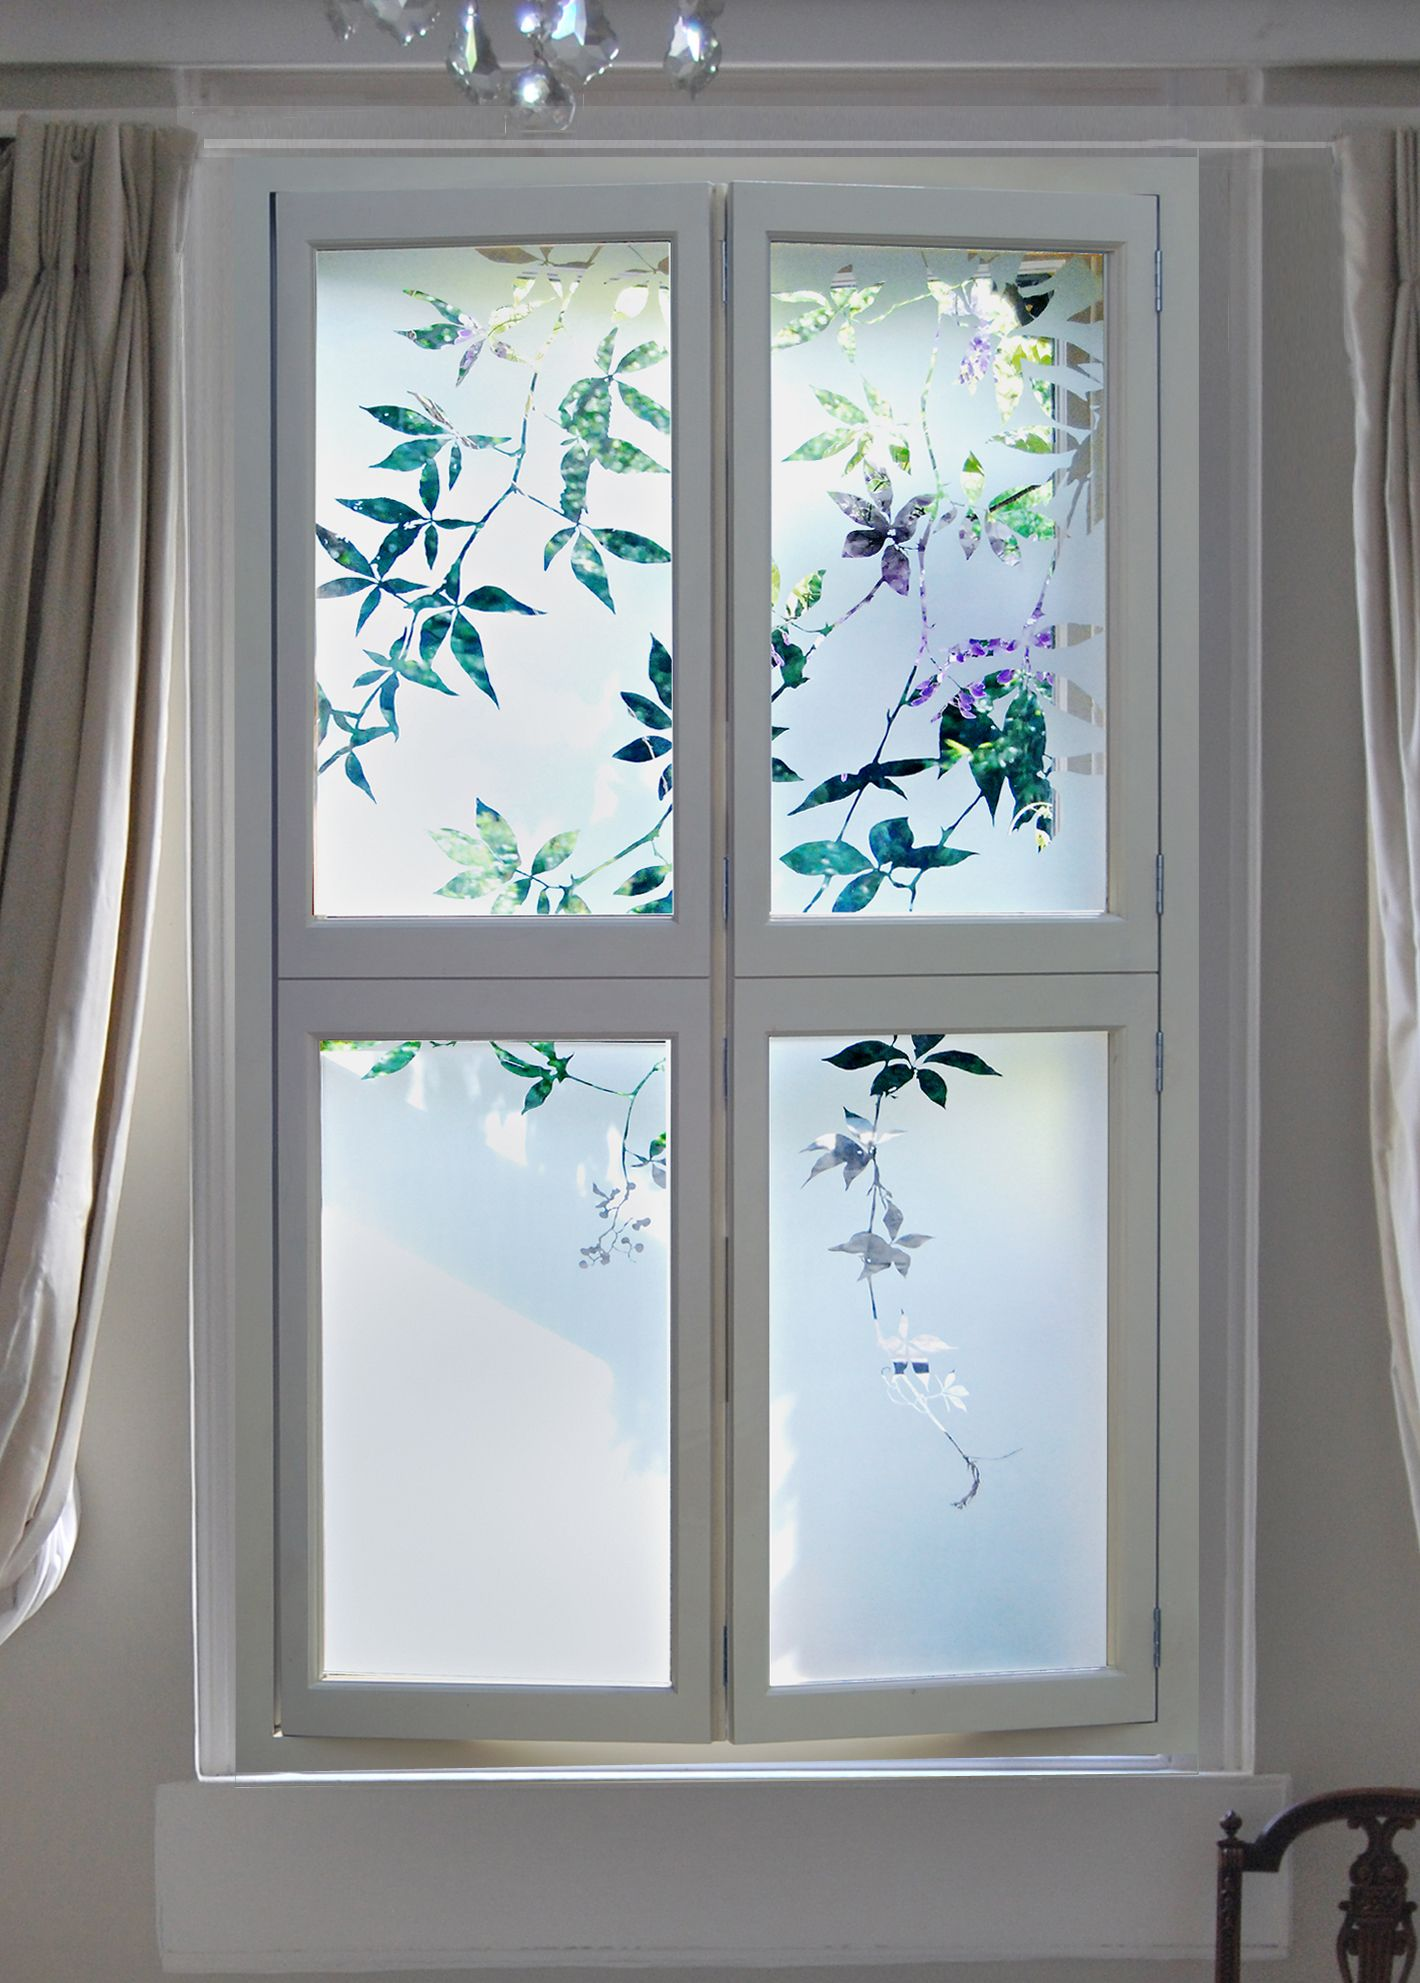 Etched Glass Shutters For Bedroom Window Glass Design Etched Glass Door Window Film Designs